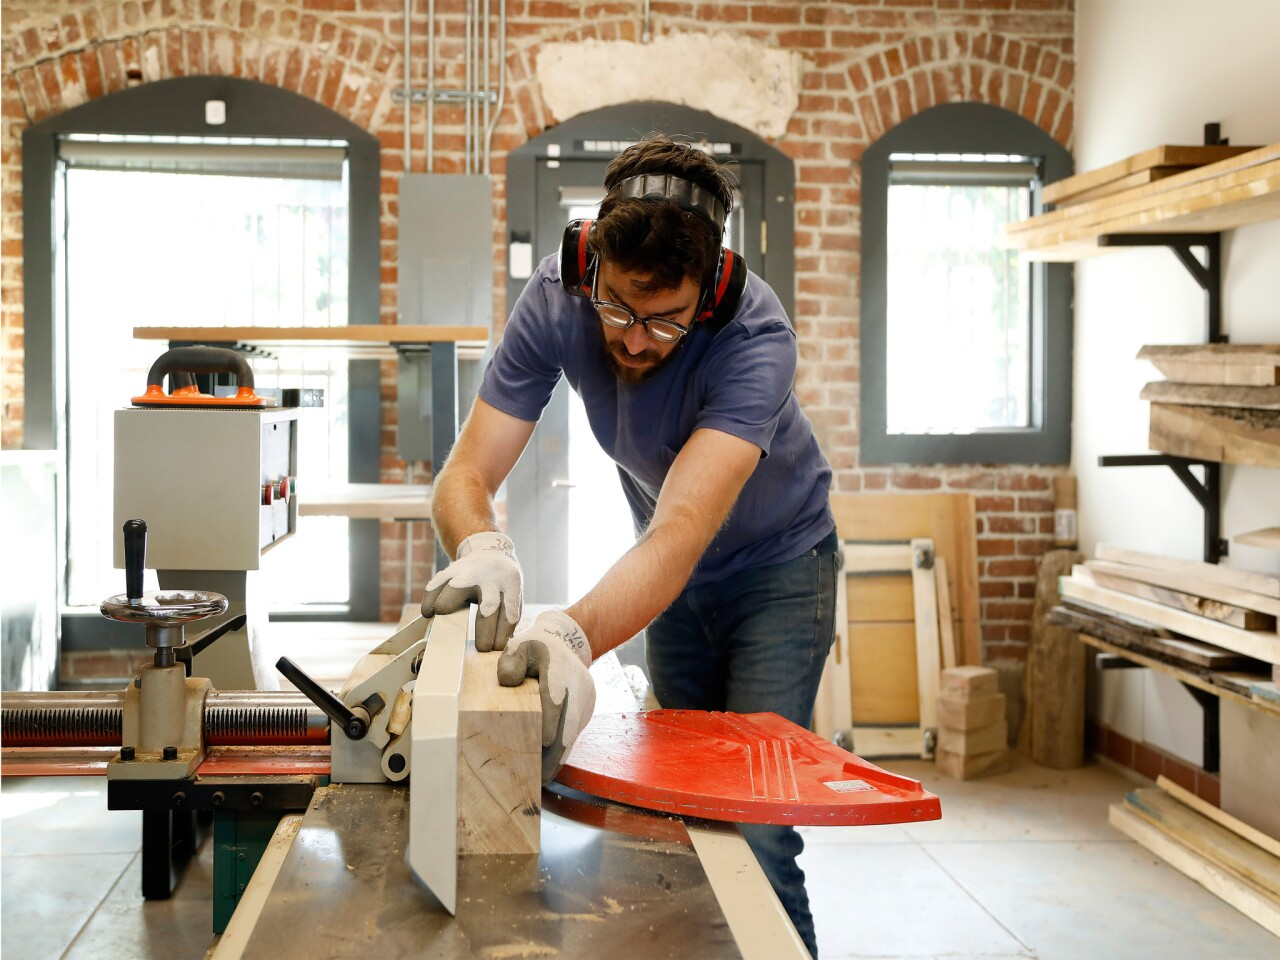 Josh Jackson works on custom furnishings for a restaurant in his Pasadena woodworking studio.